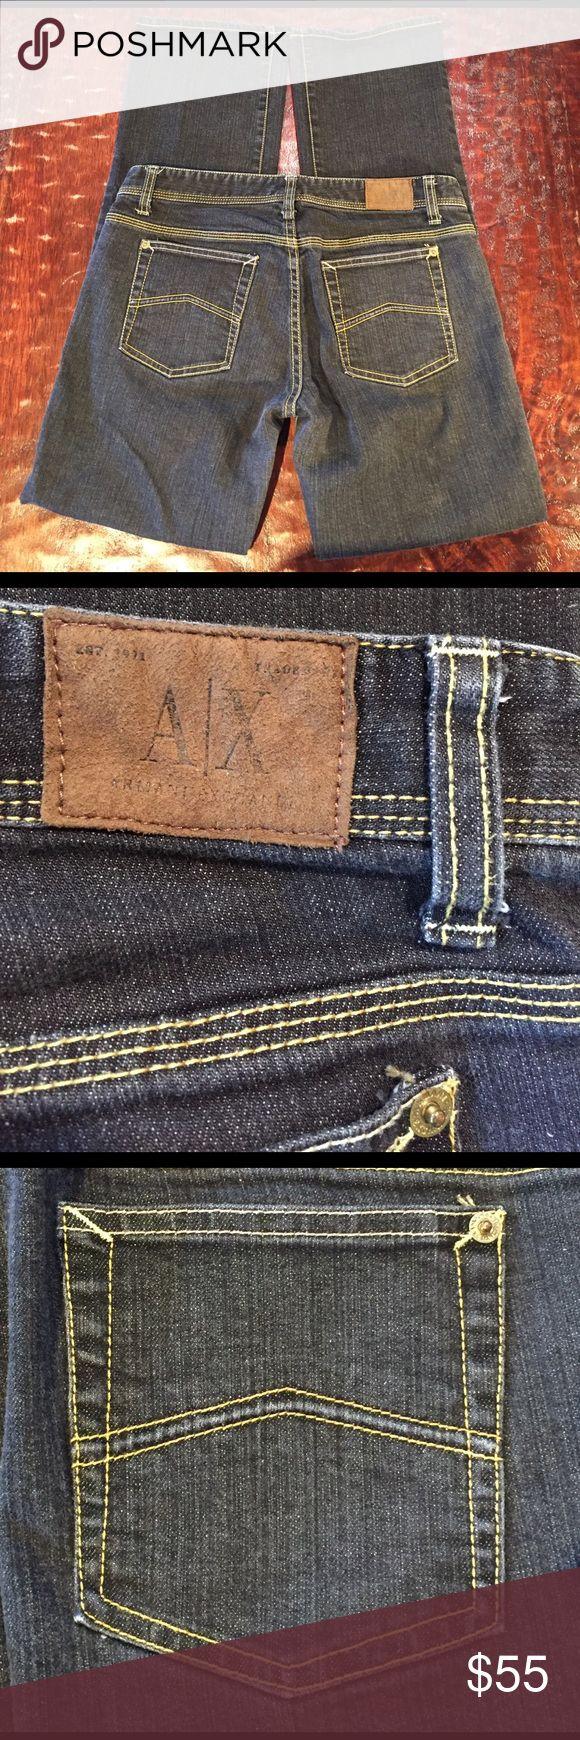 """A/X Armani Exchange Grey Jeans Size 8 Short A/X Armani Exchange Grey Jeans Size 8 Short. Jean has a Short 29"""" inseam. Jean is Grey with yellow stitching. Jean is in excellent condition with no signs of wear. Comes from a Smoke Free/Pet Friendly home. Offers always welcome. A/X Armani Exchange Jeans Boot Cut"""